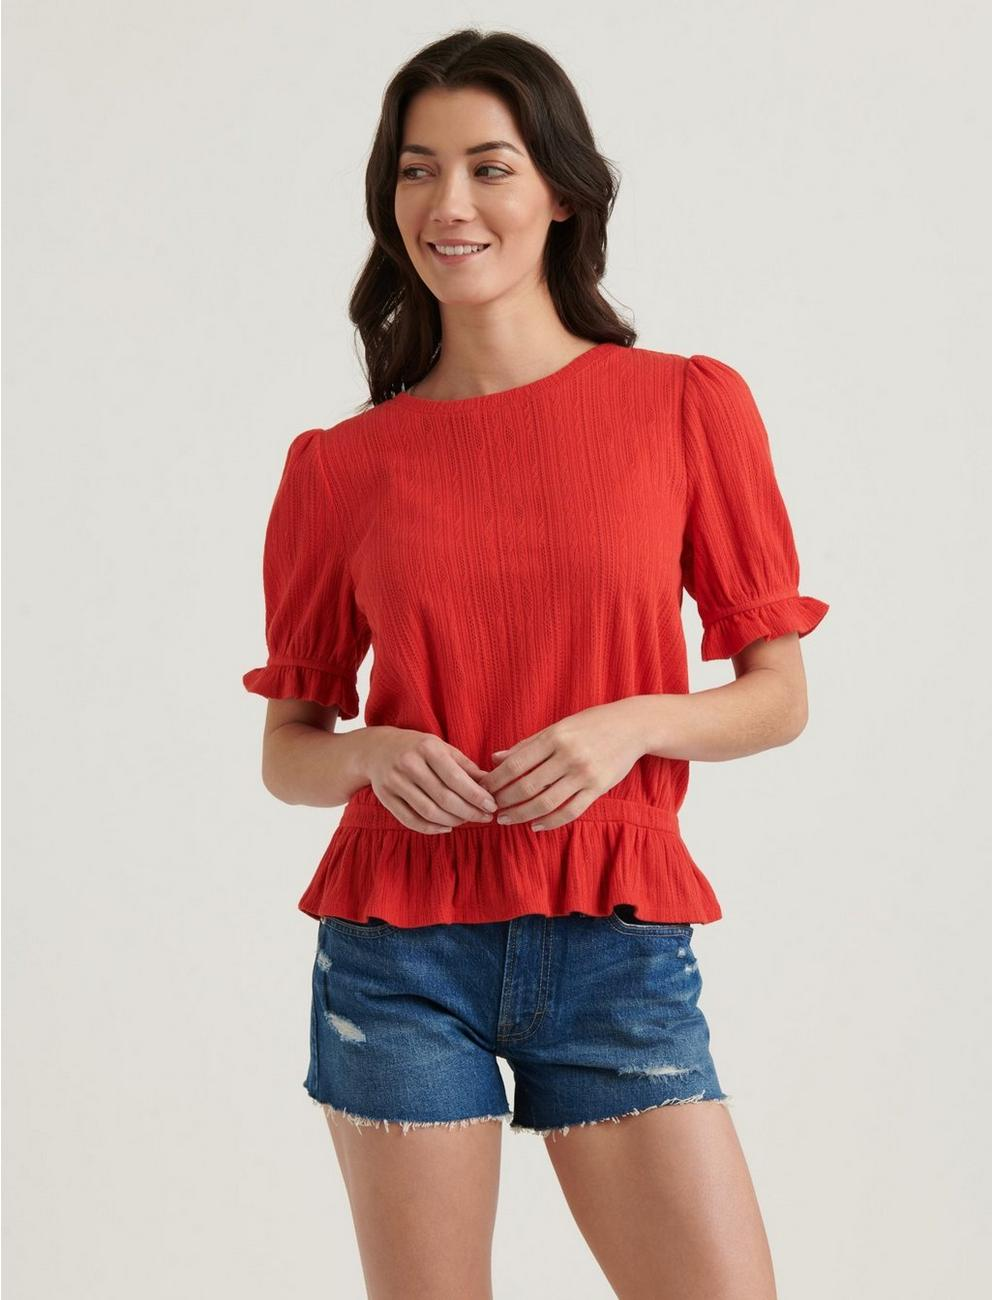 POINTELLE KNIT BANDED TOP,